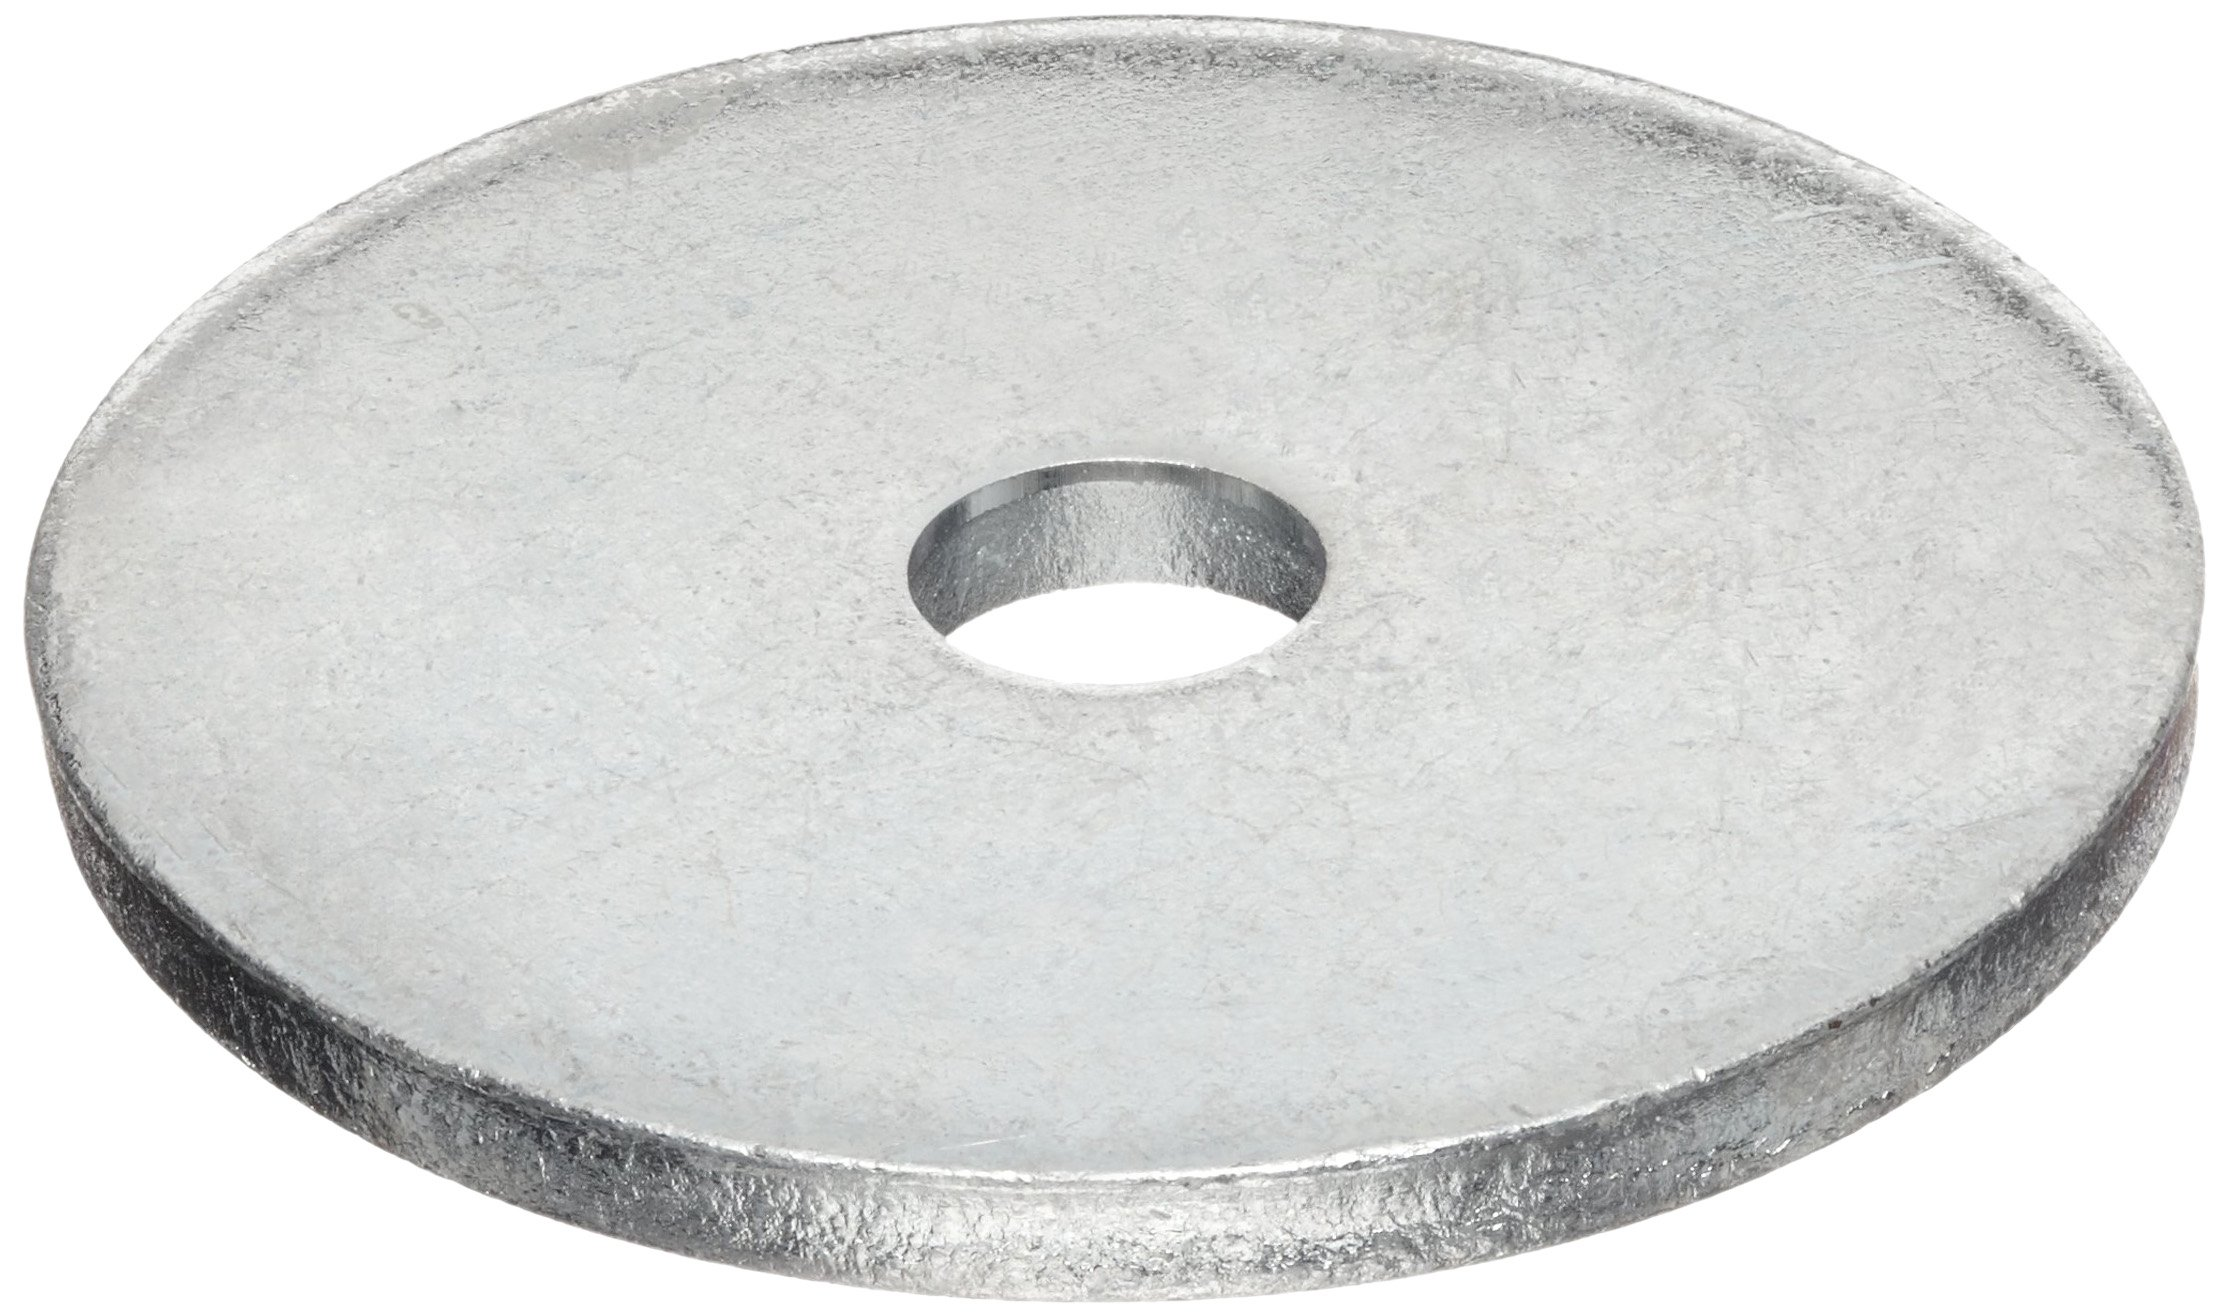 Carbon Steel Type B Flat Washer, Meets ANSI B18.22.1, 5/16'' Hole Size, 0.563'' ID, 3'' OD, 0.250'' Nominal Thickness, Made in US